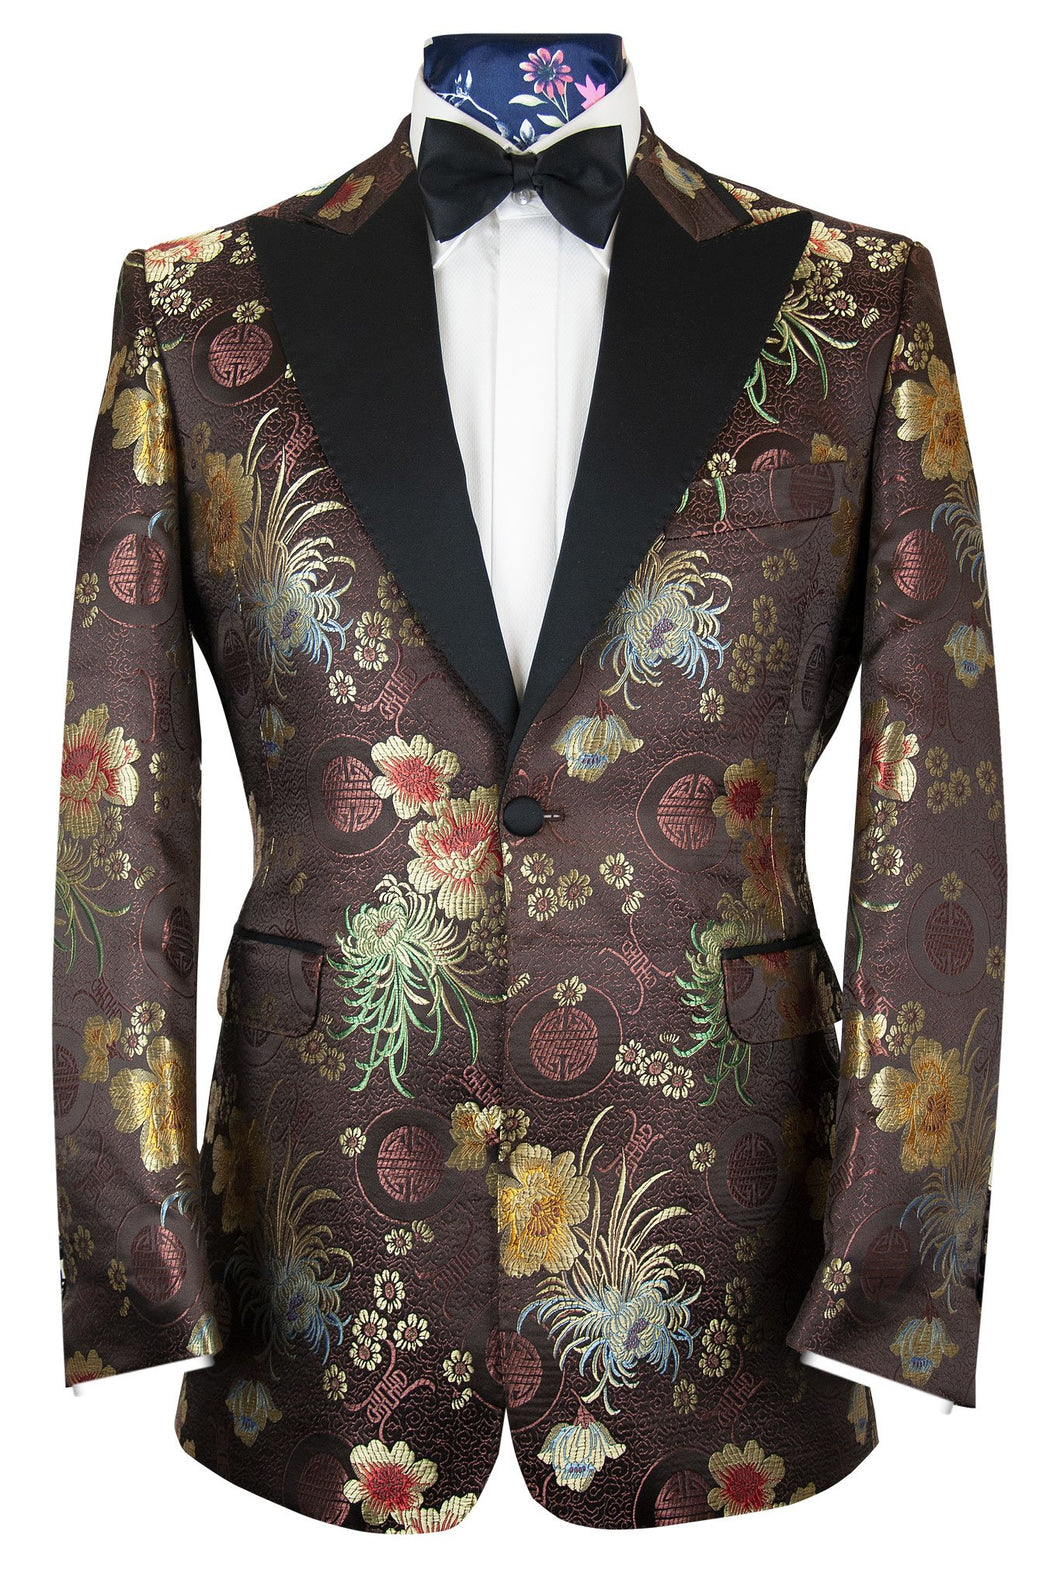 The Harley Dinner Jacket in Chinese Brocade